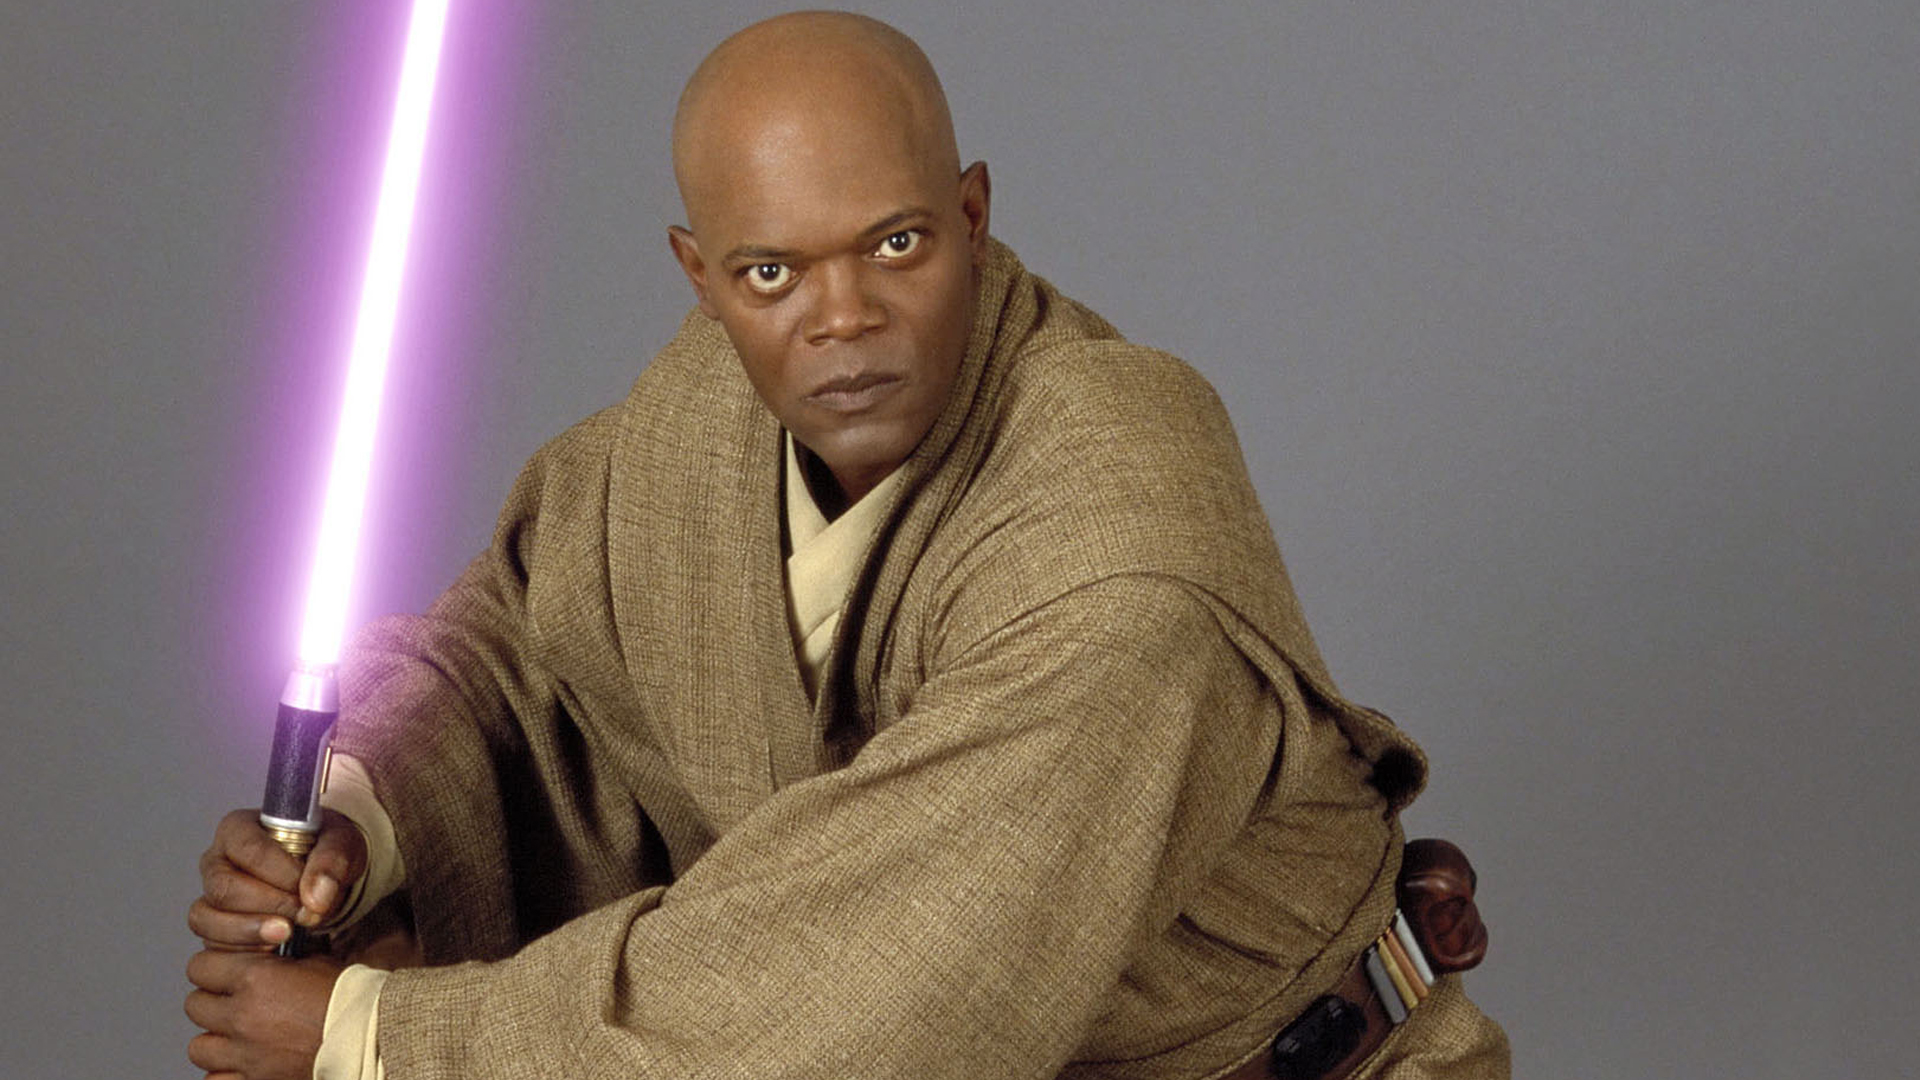 Former Jedi Samuel L Jackson Gives His Thoughts About STAR WARS 1920x1080